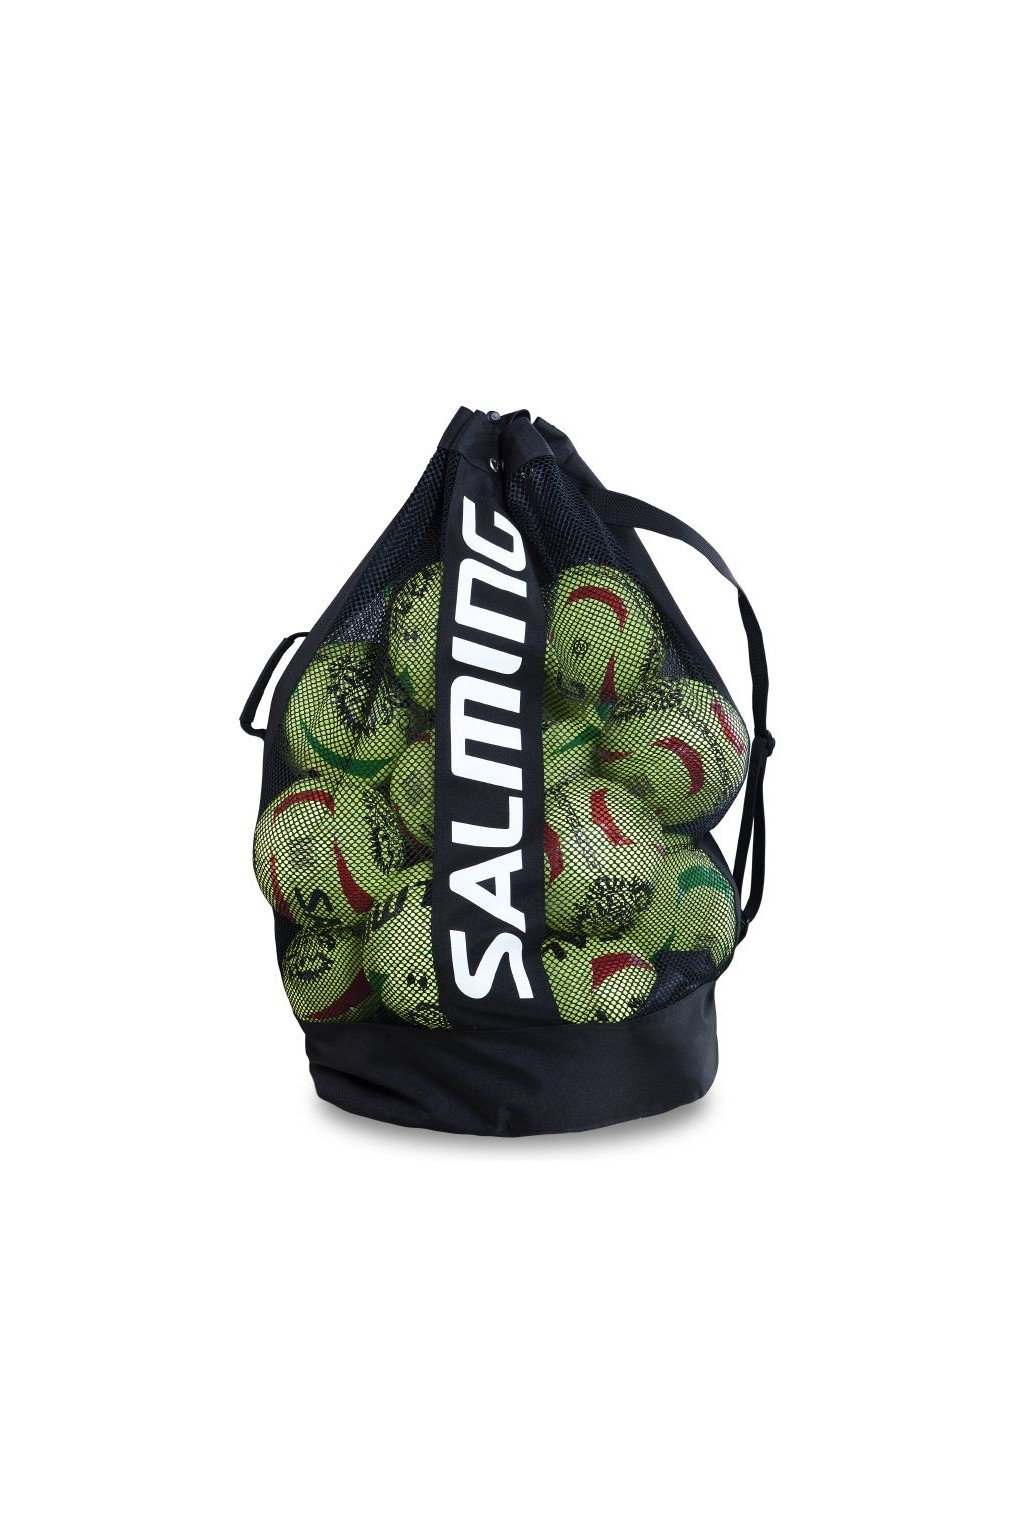 salming handball ball bag black